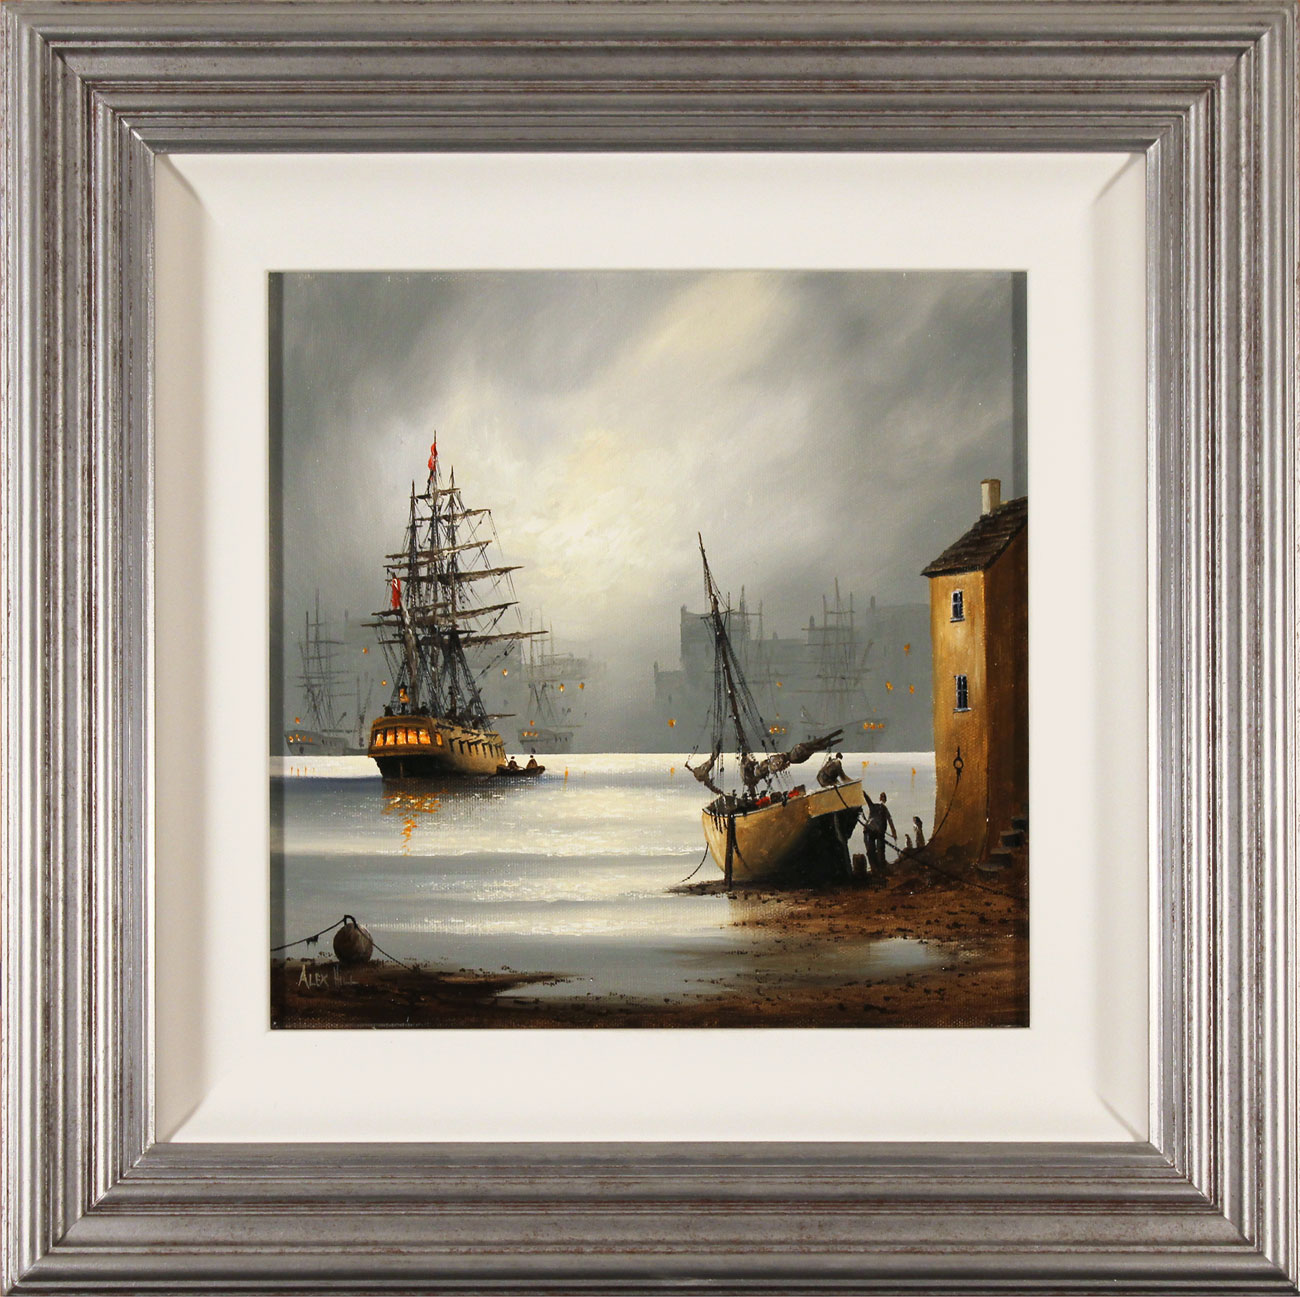 Alex Hill, Original oil painting on canvas, Moonlight Harbour. Click to enlarge